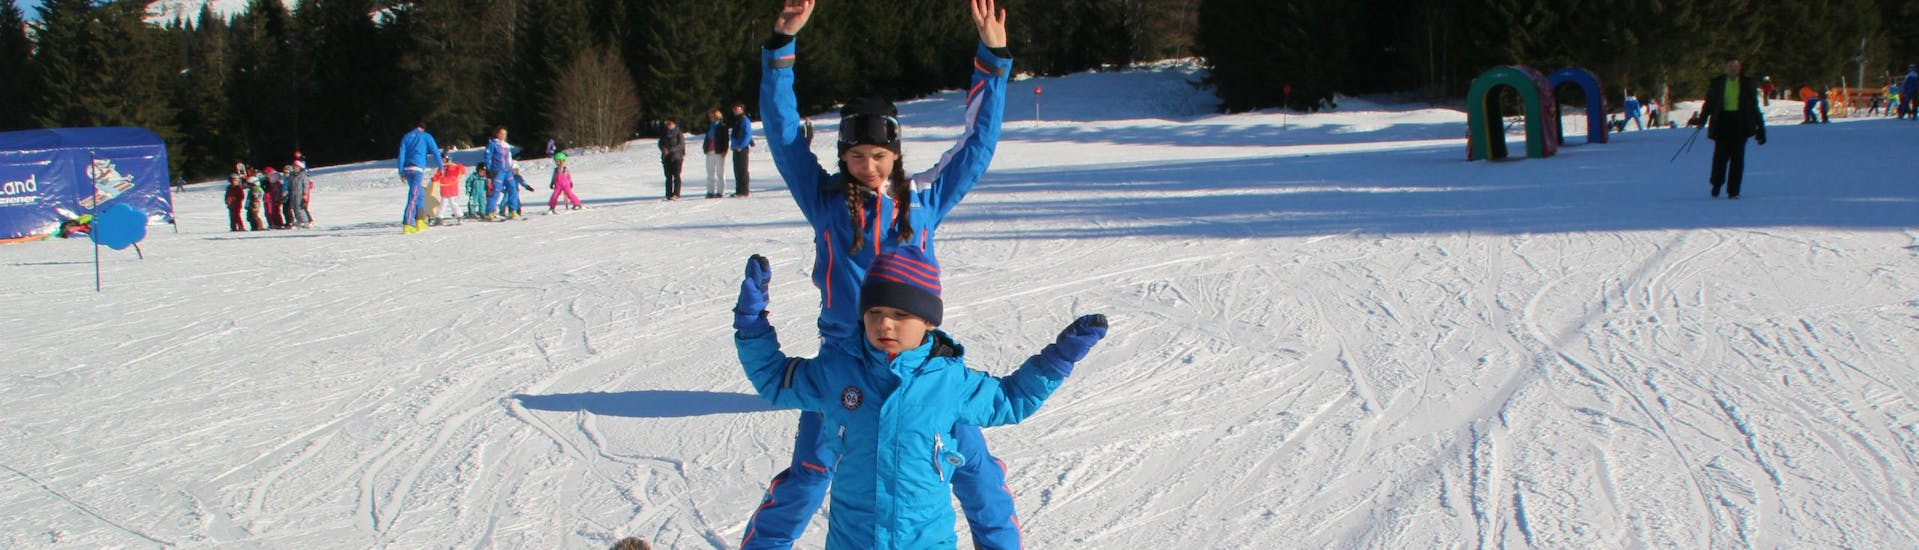 Private Ski Lessons for Kids of All Ages with Ski & Snowboard School Ostrachtal - Hero image